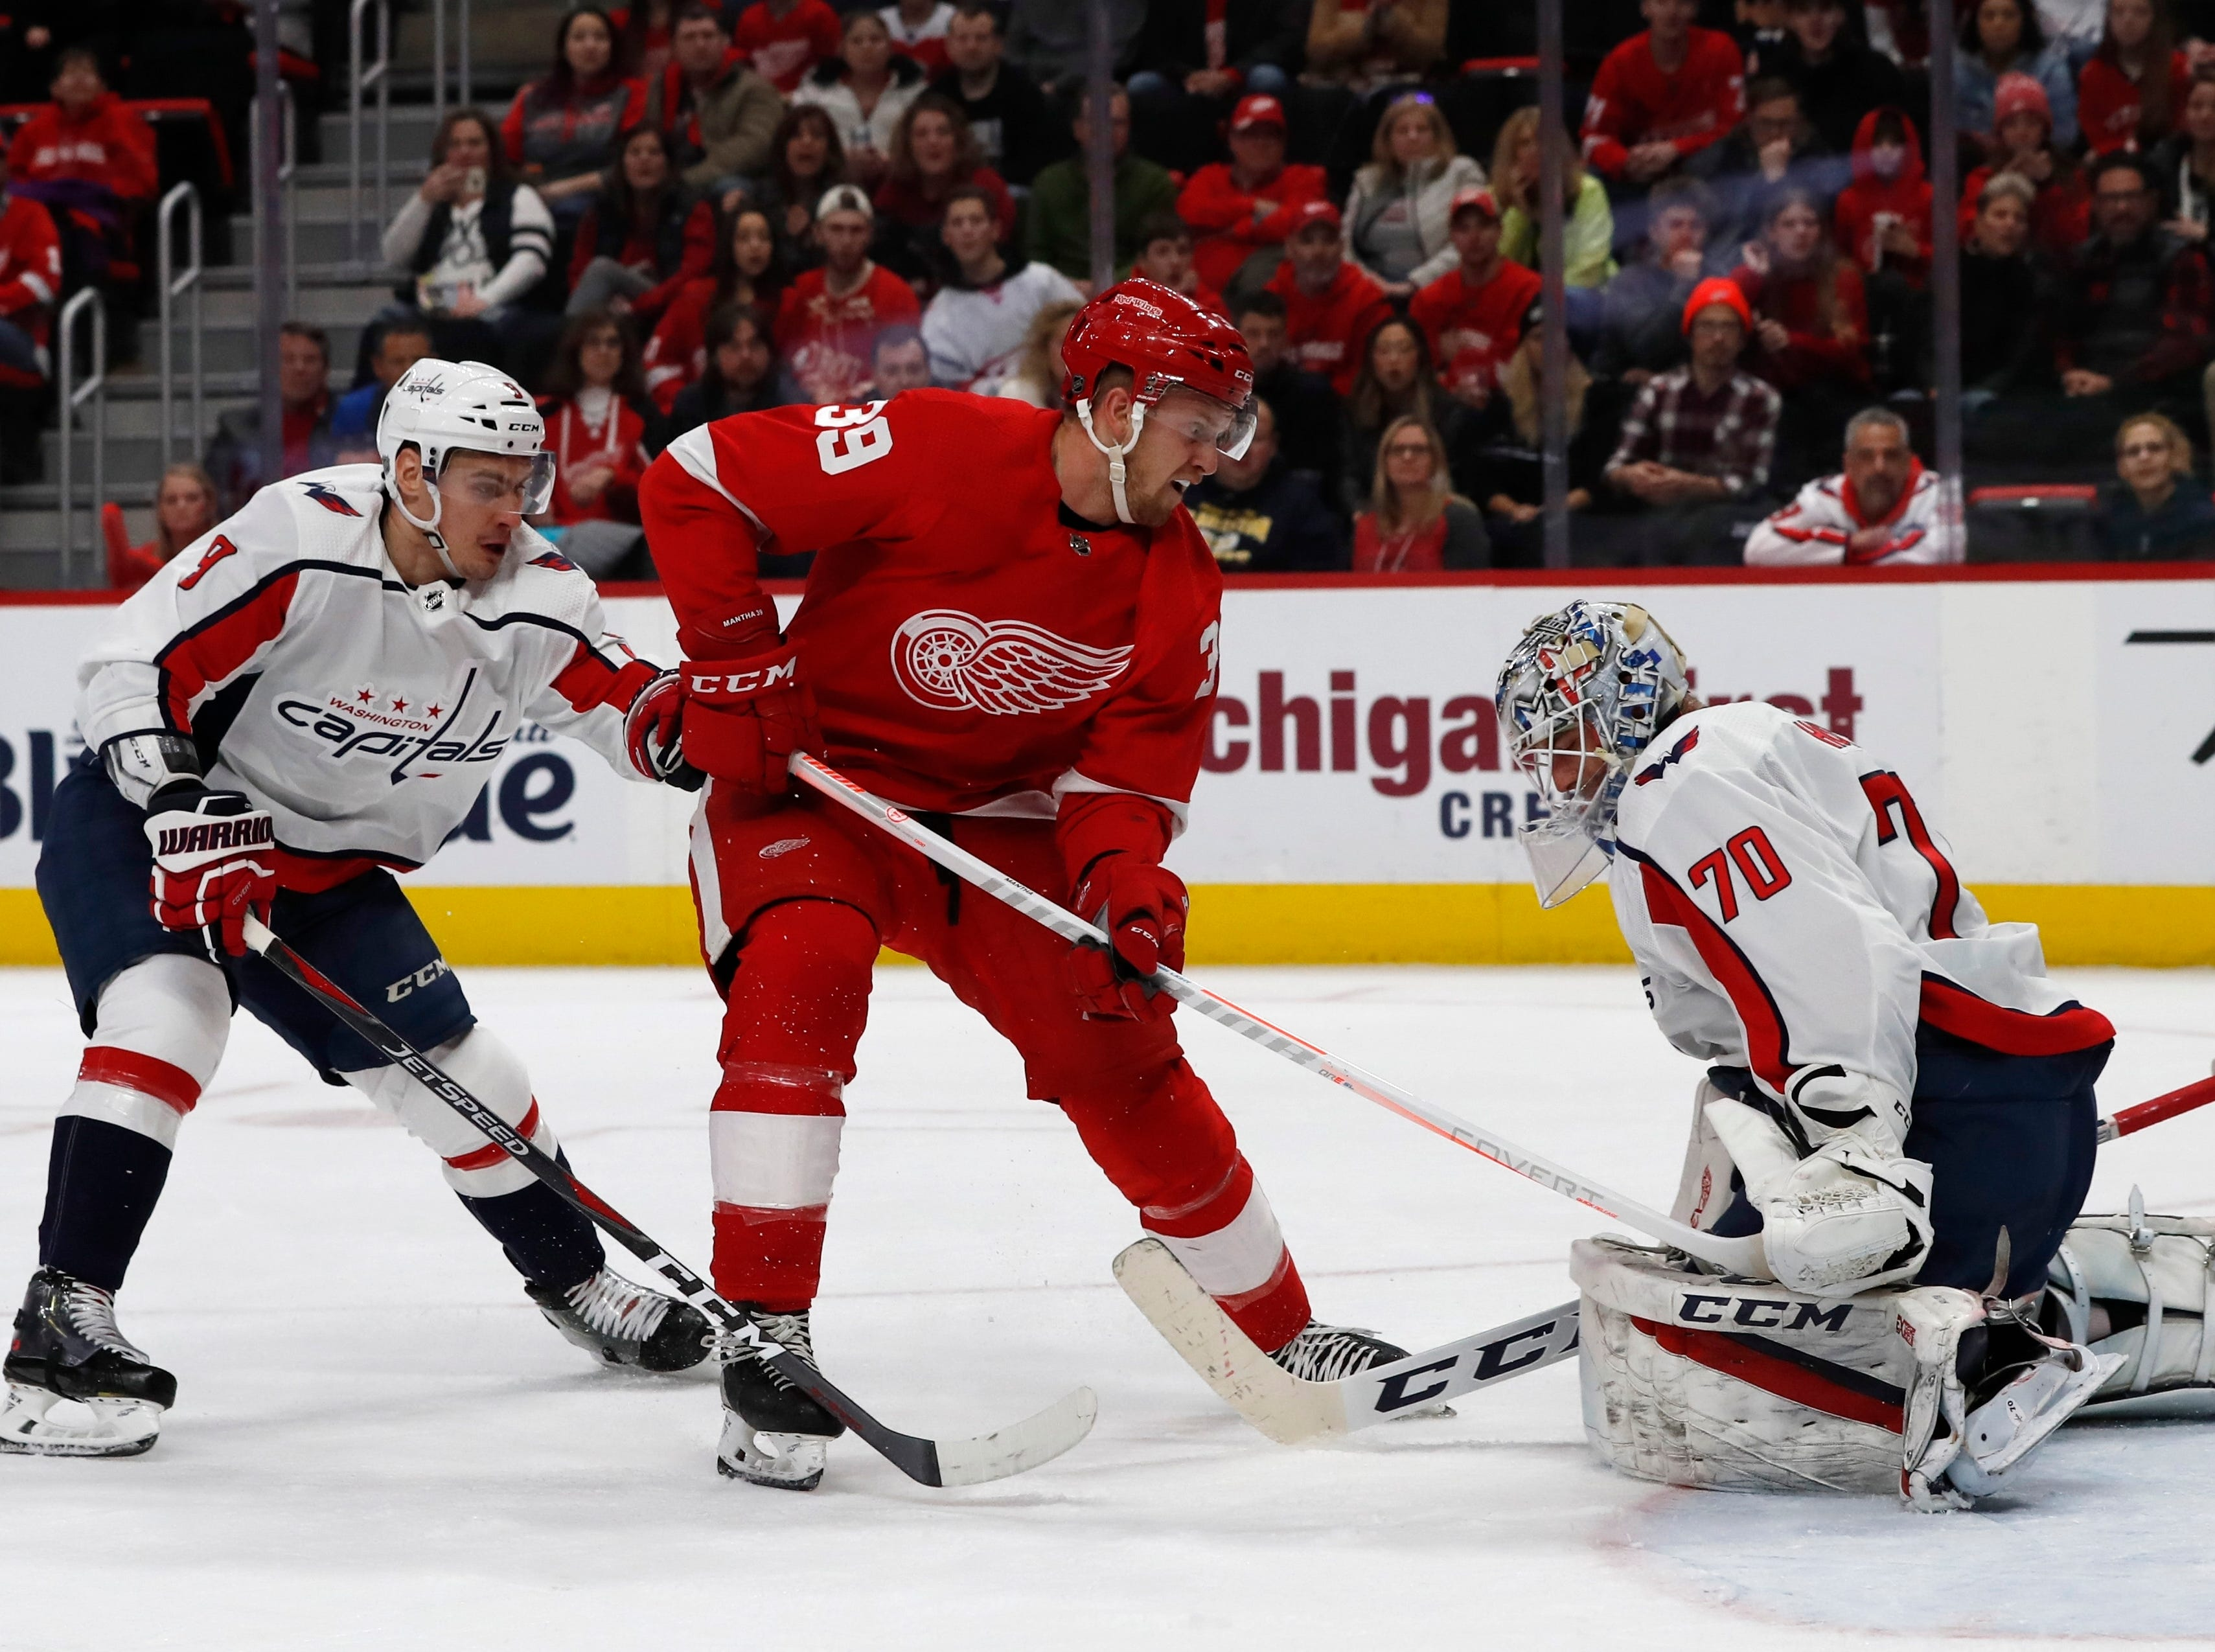 Detroit Red Wings right wing Anthony Mantha (39) shoots the puck past Washington Capitals goaltender Braden Holtby (70) for a goal during the first period of an NHL hockey game, Sunday, Jan. 6, 2019, in Detroit.